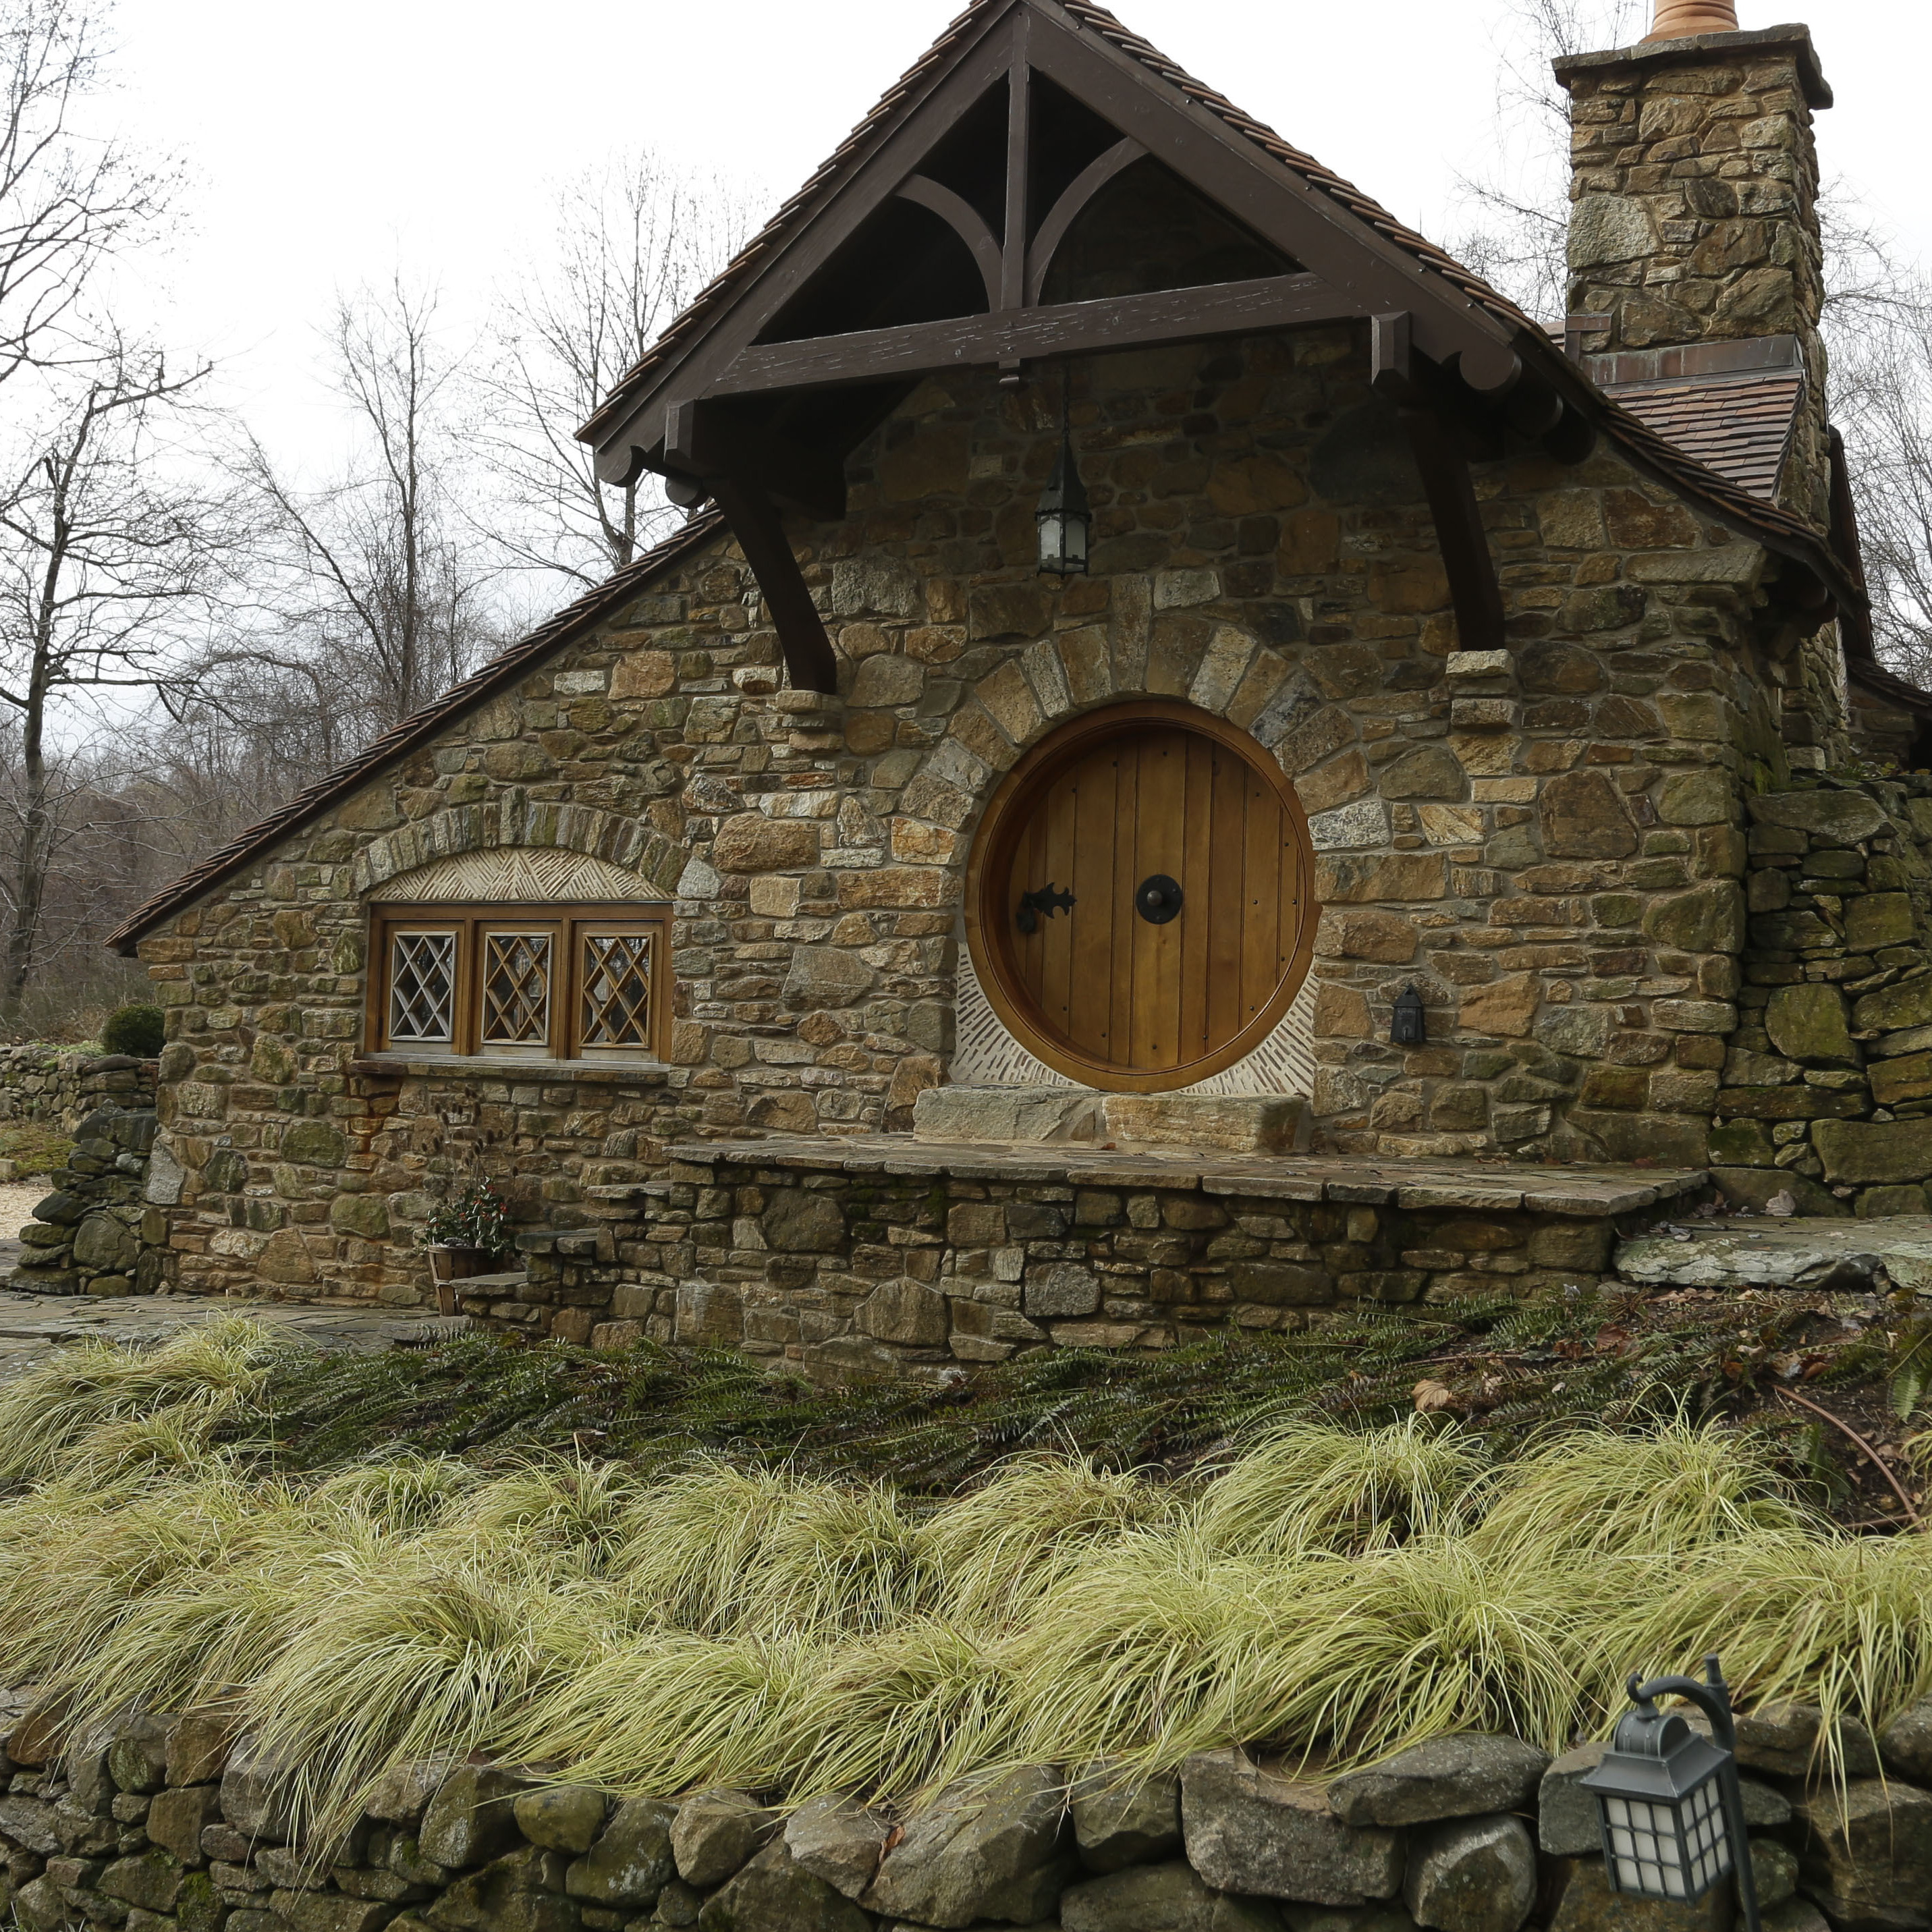 Shown is an exterior view of the Hobbit House in Chester County, near Philadelphia. Architect Peter Archer has designed a Hobbit House containing a world-class collection of J.R.R. Tolkien manuscripts and memorabilia.